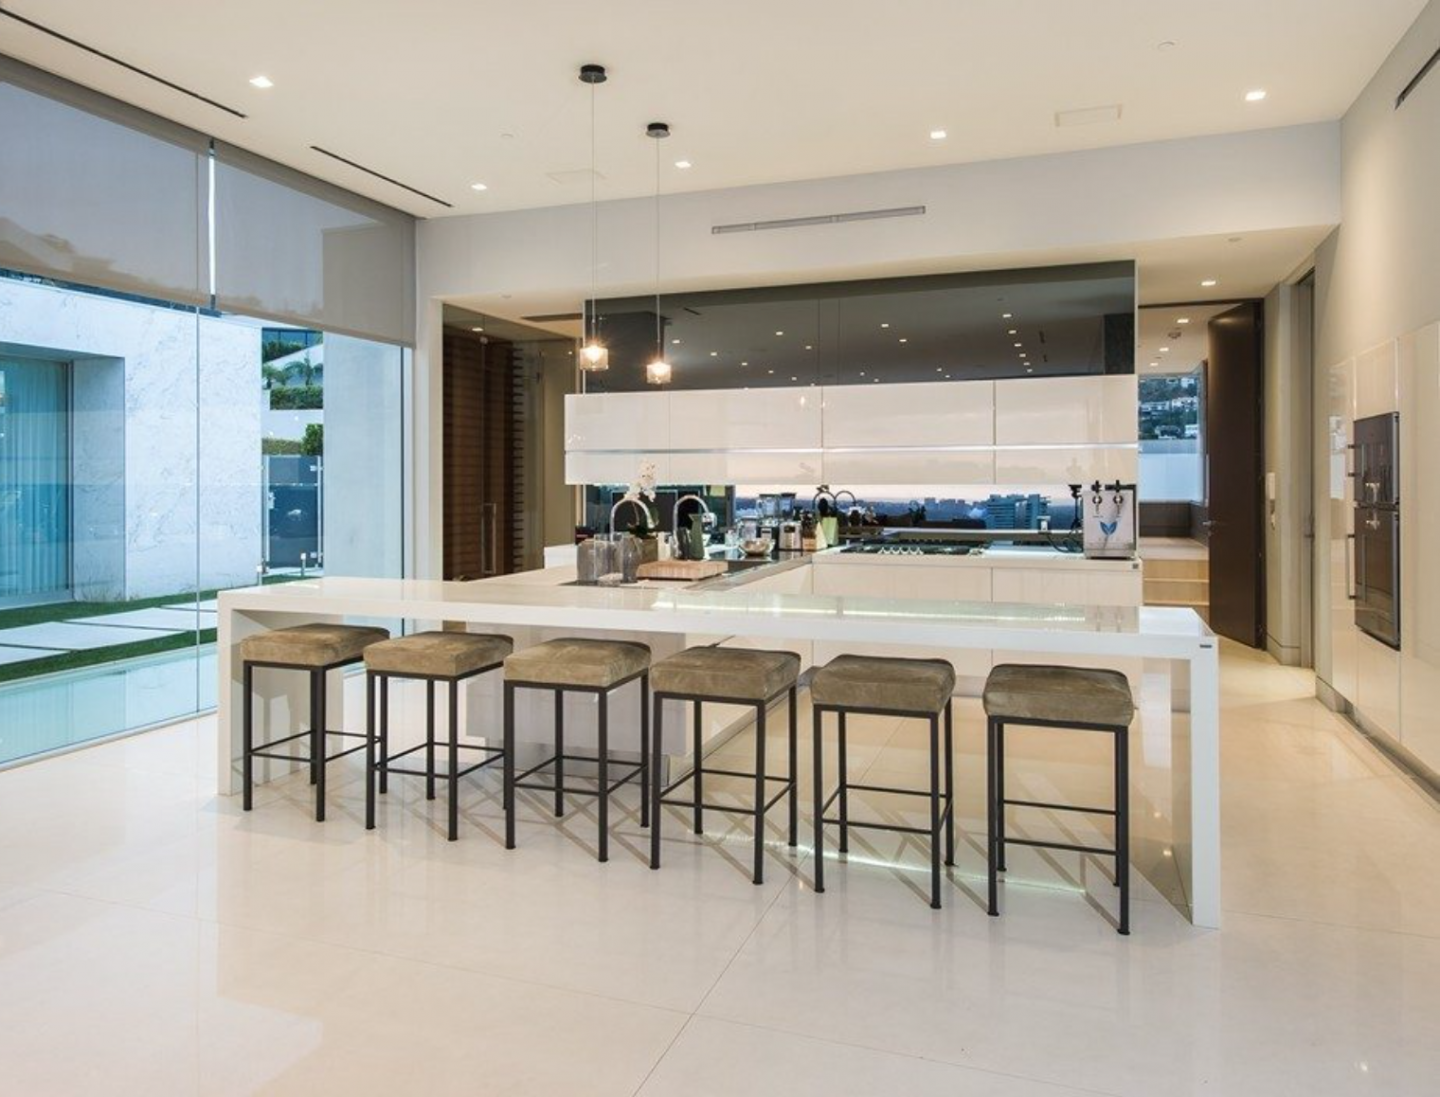 The home's open spaces are ideal for entertaining